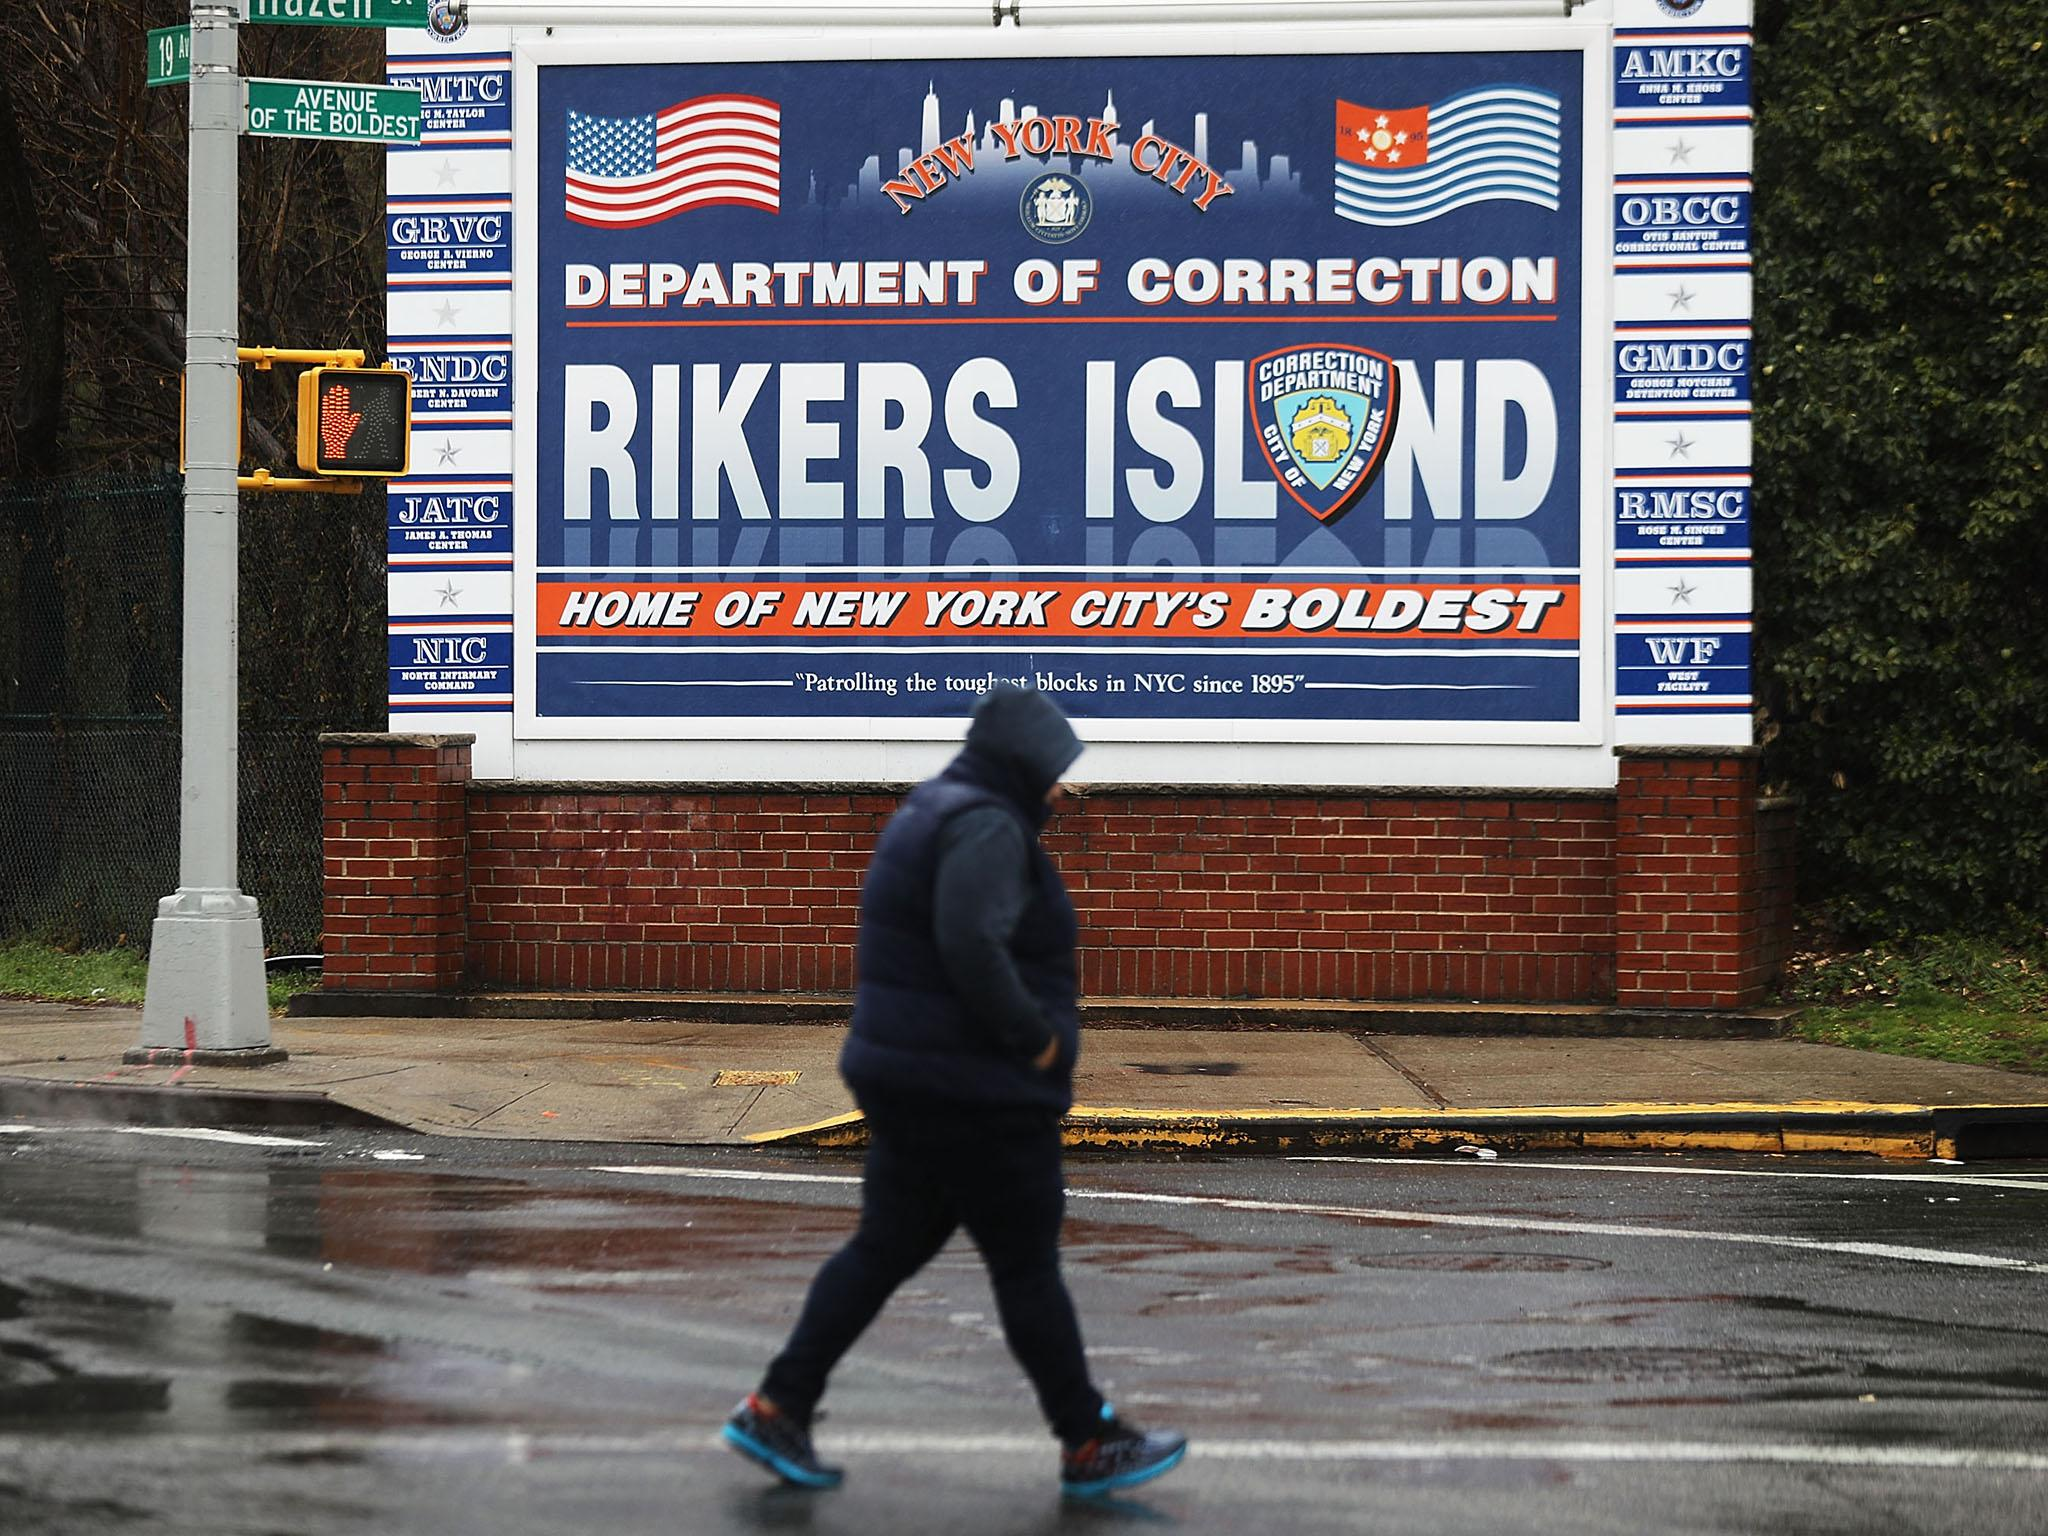 I worked at Rikers Island. Believe me when I say these inmates shouldn't be released into New York City